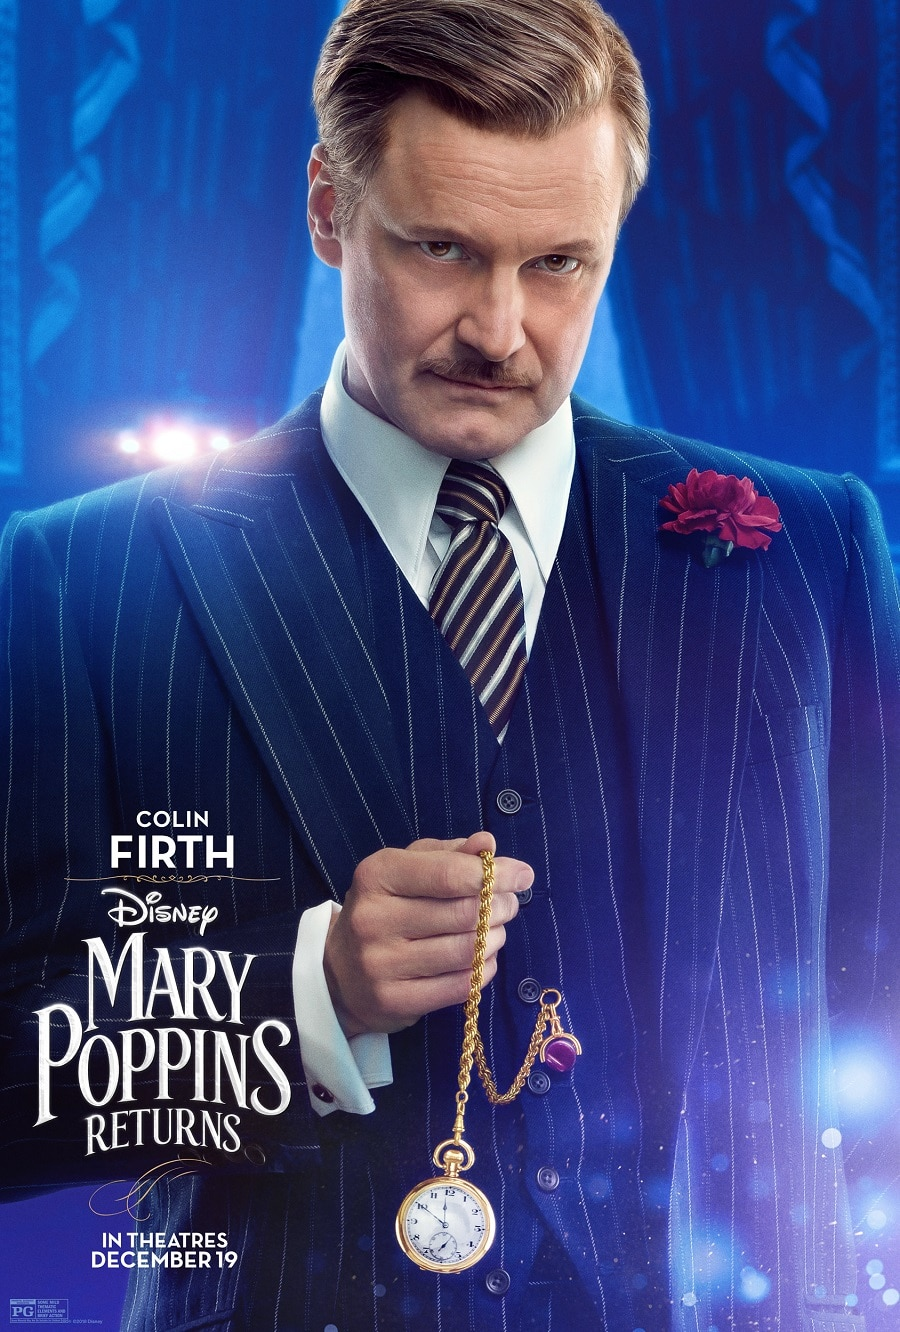 Here They Are! New Character Posters And A New Sneak Peek From Mary Poppins Returns